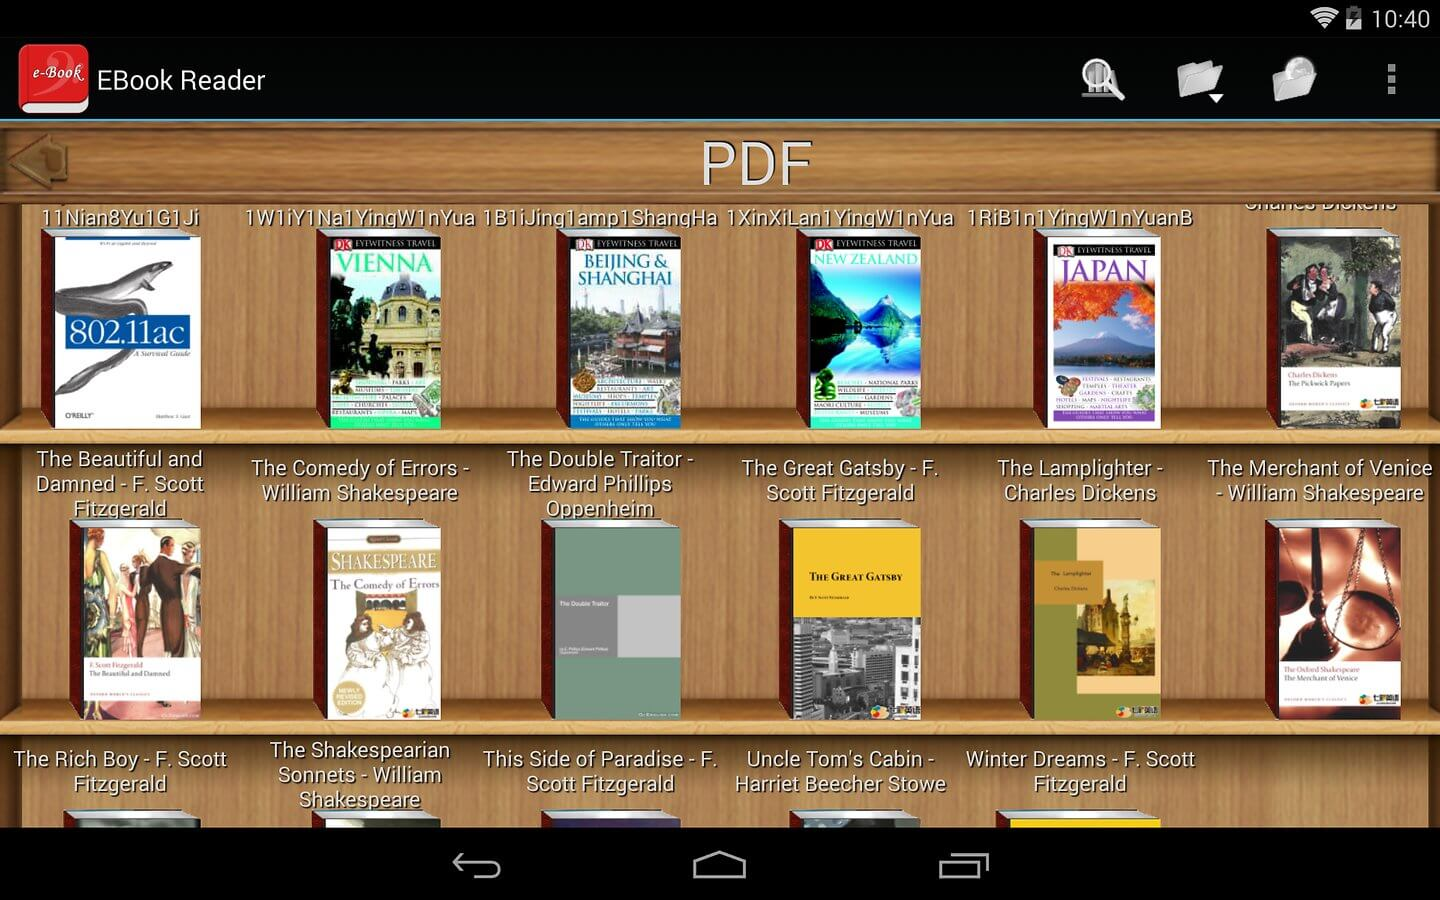 DJVU Reader for Android - Ebook